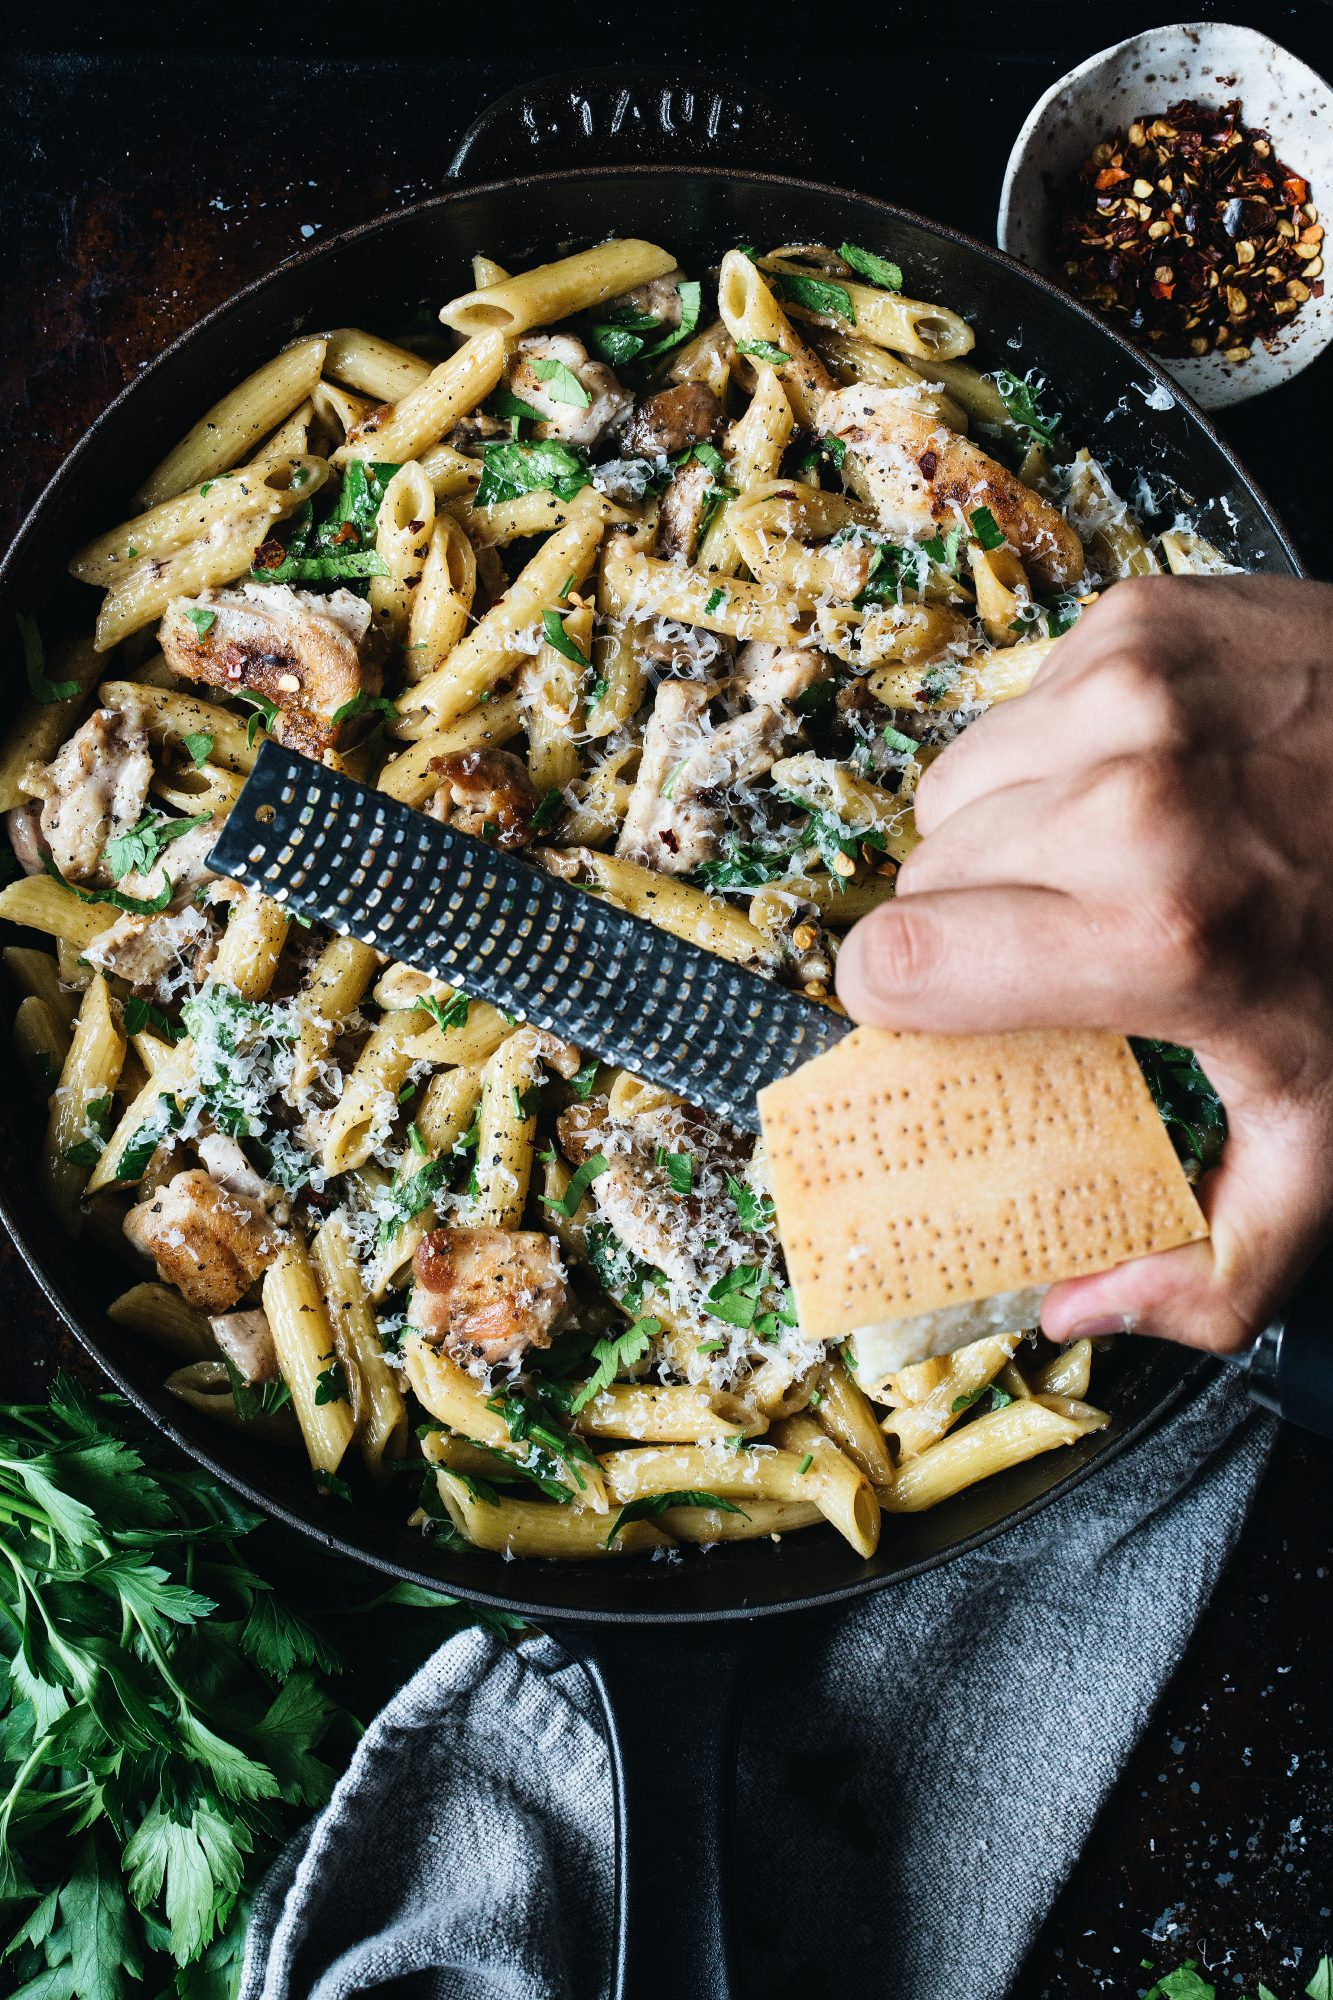 Caramelized Onion, Mushroom, and Chicken Penne Image